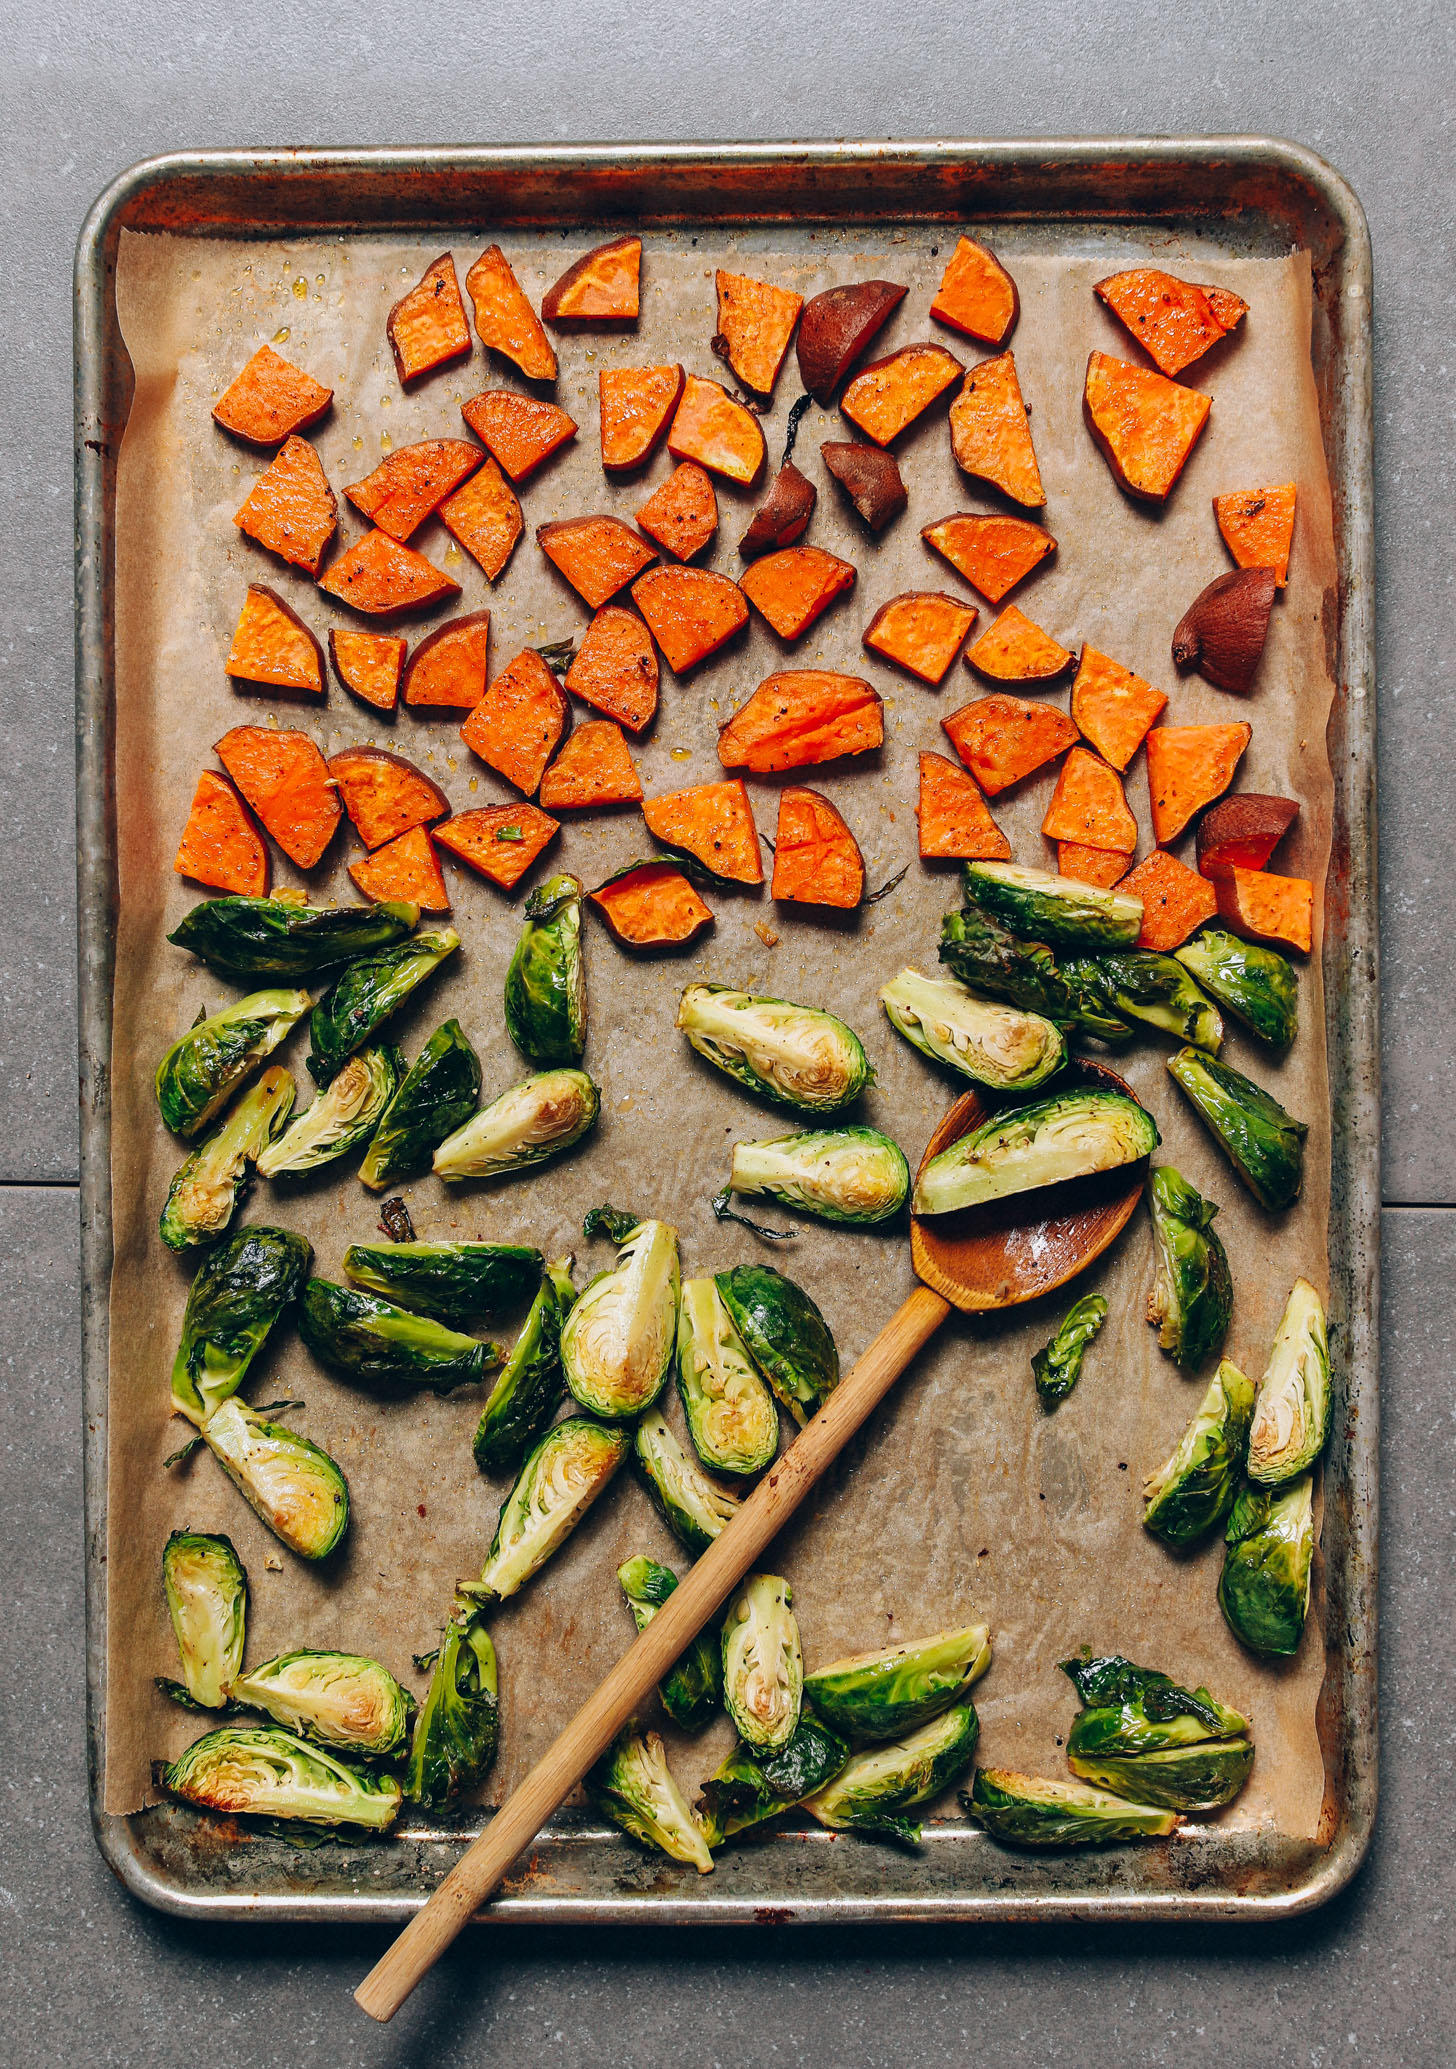 Parchment-lined baking sheet of roasted sweet potatoes and Brussels sprouts for our Fall Breakfast Hash recipe